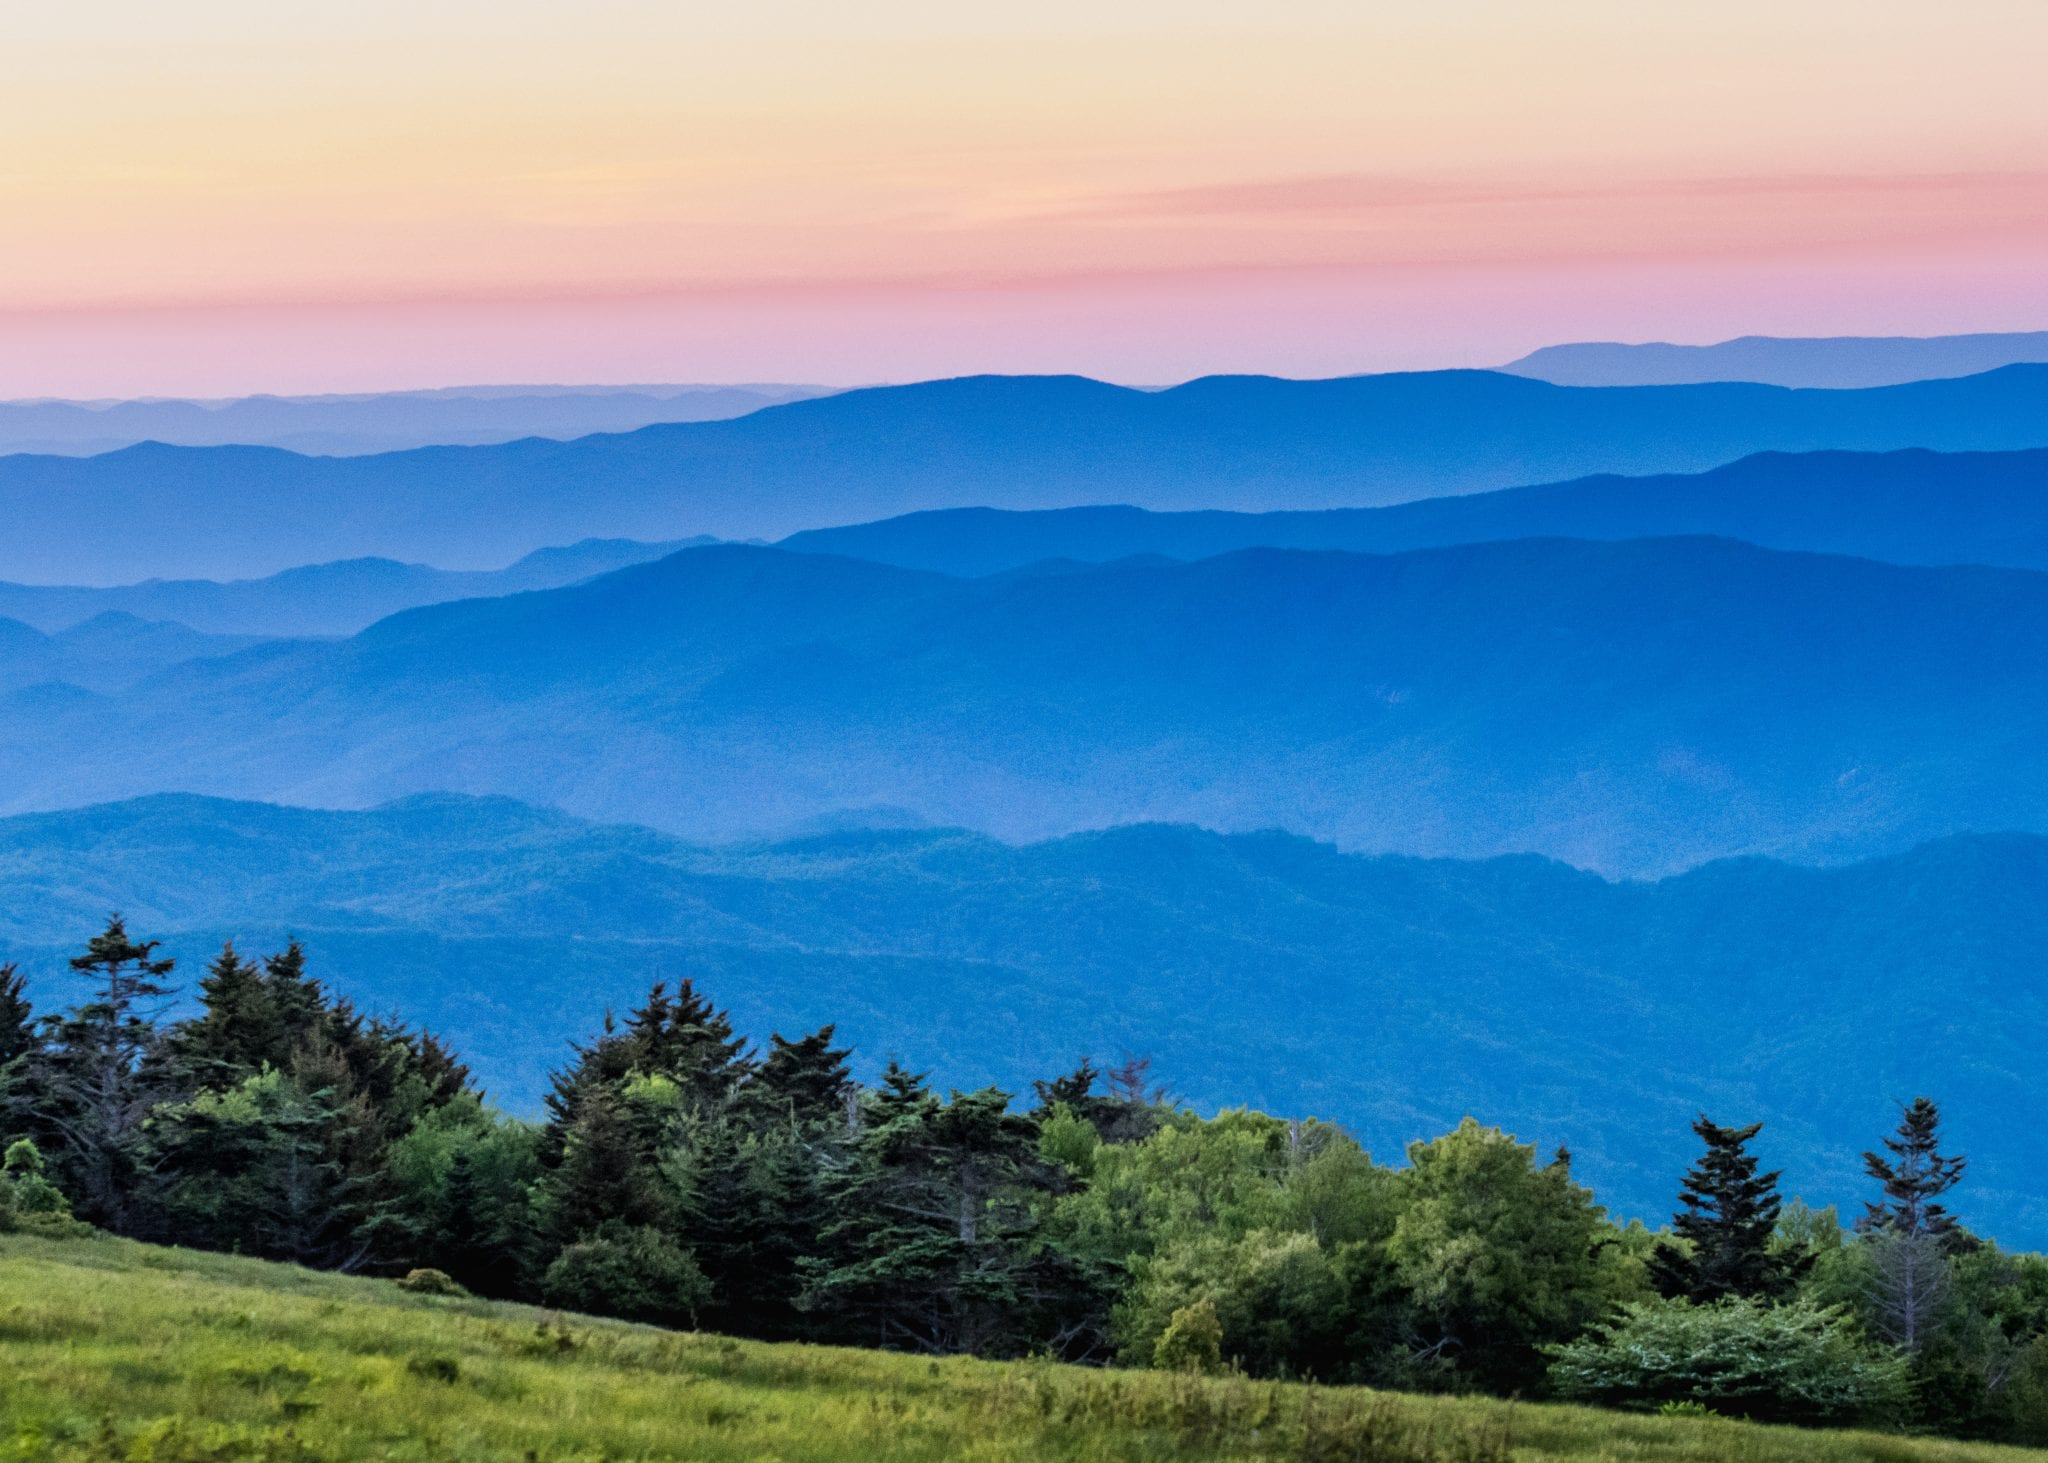 Hazy Blue Ridge Mountains at Sunset with grass bald in foreground